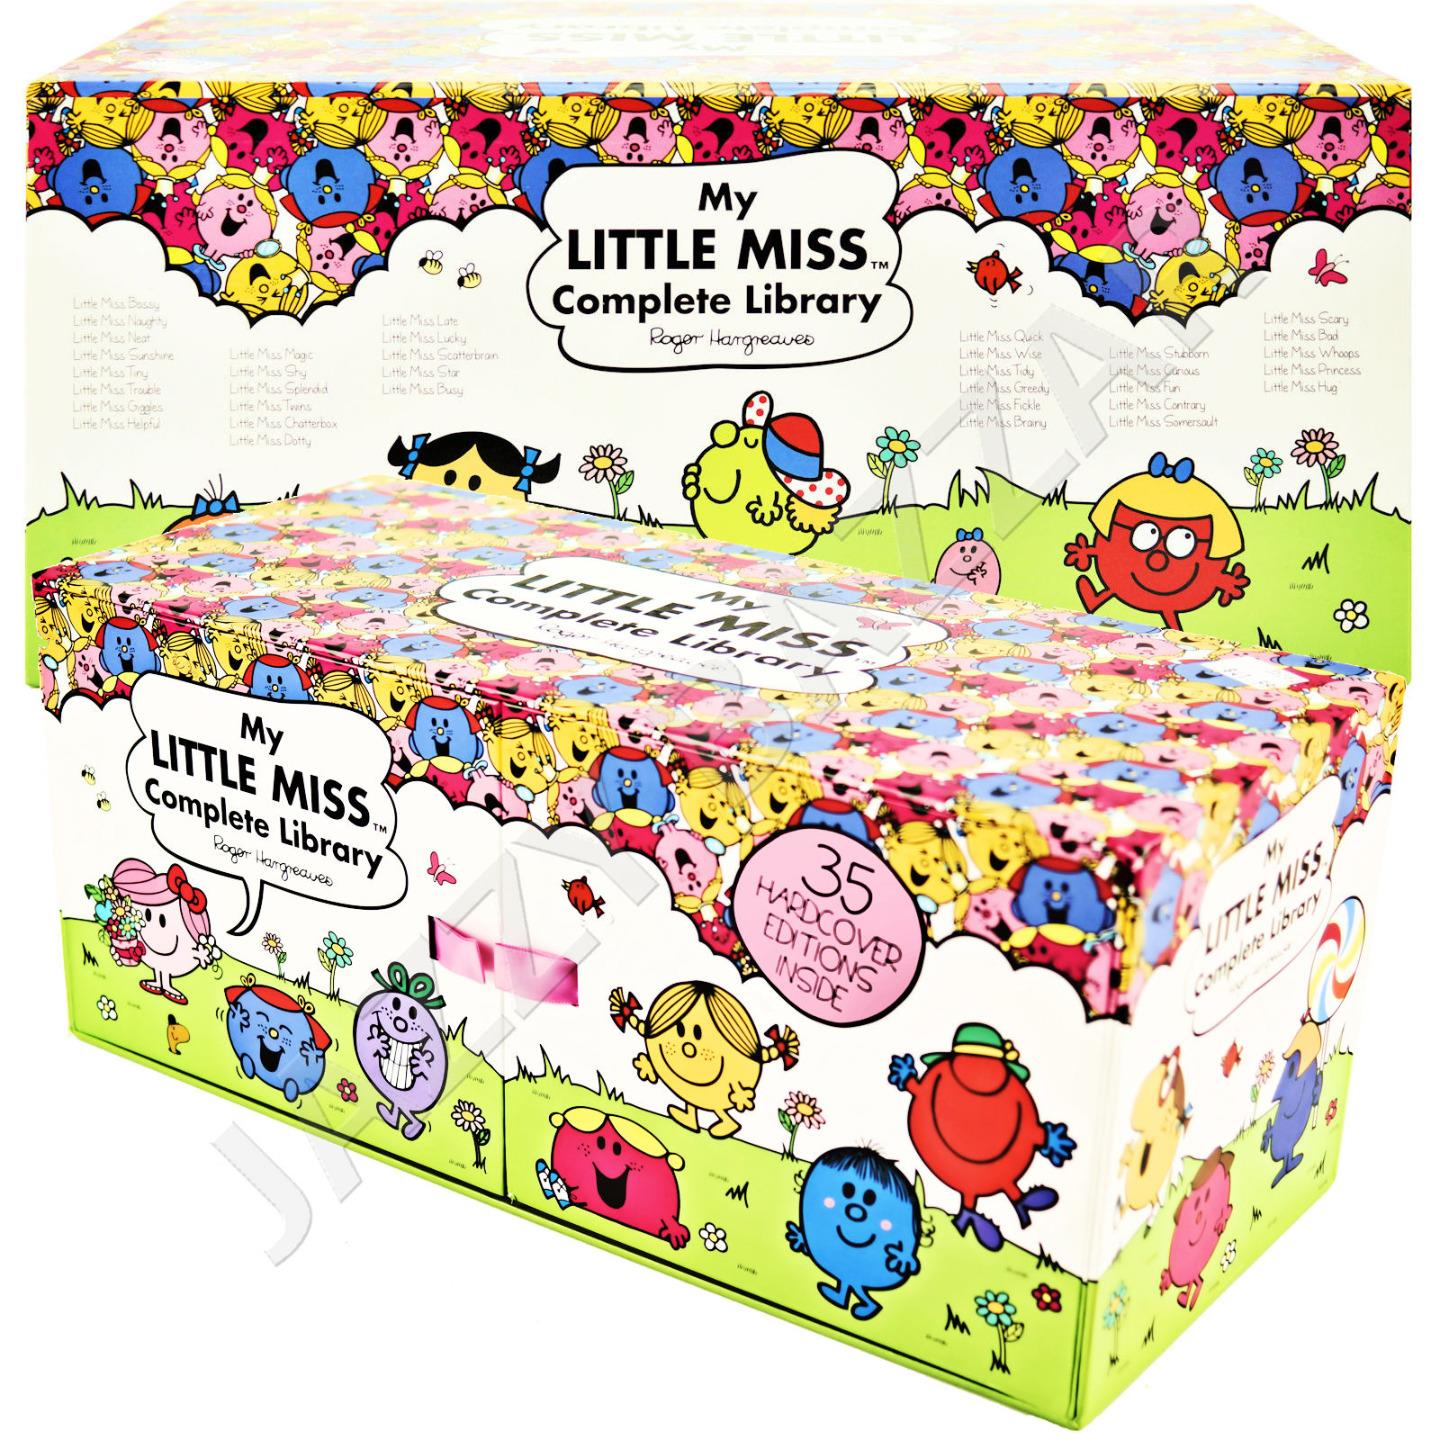 My Little Miss Complete Library Complete Box Set 35 Books Collection Hard Cover Ebay